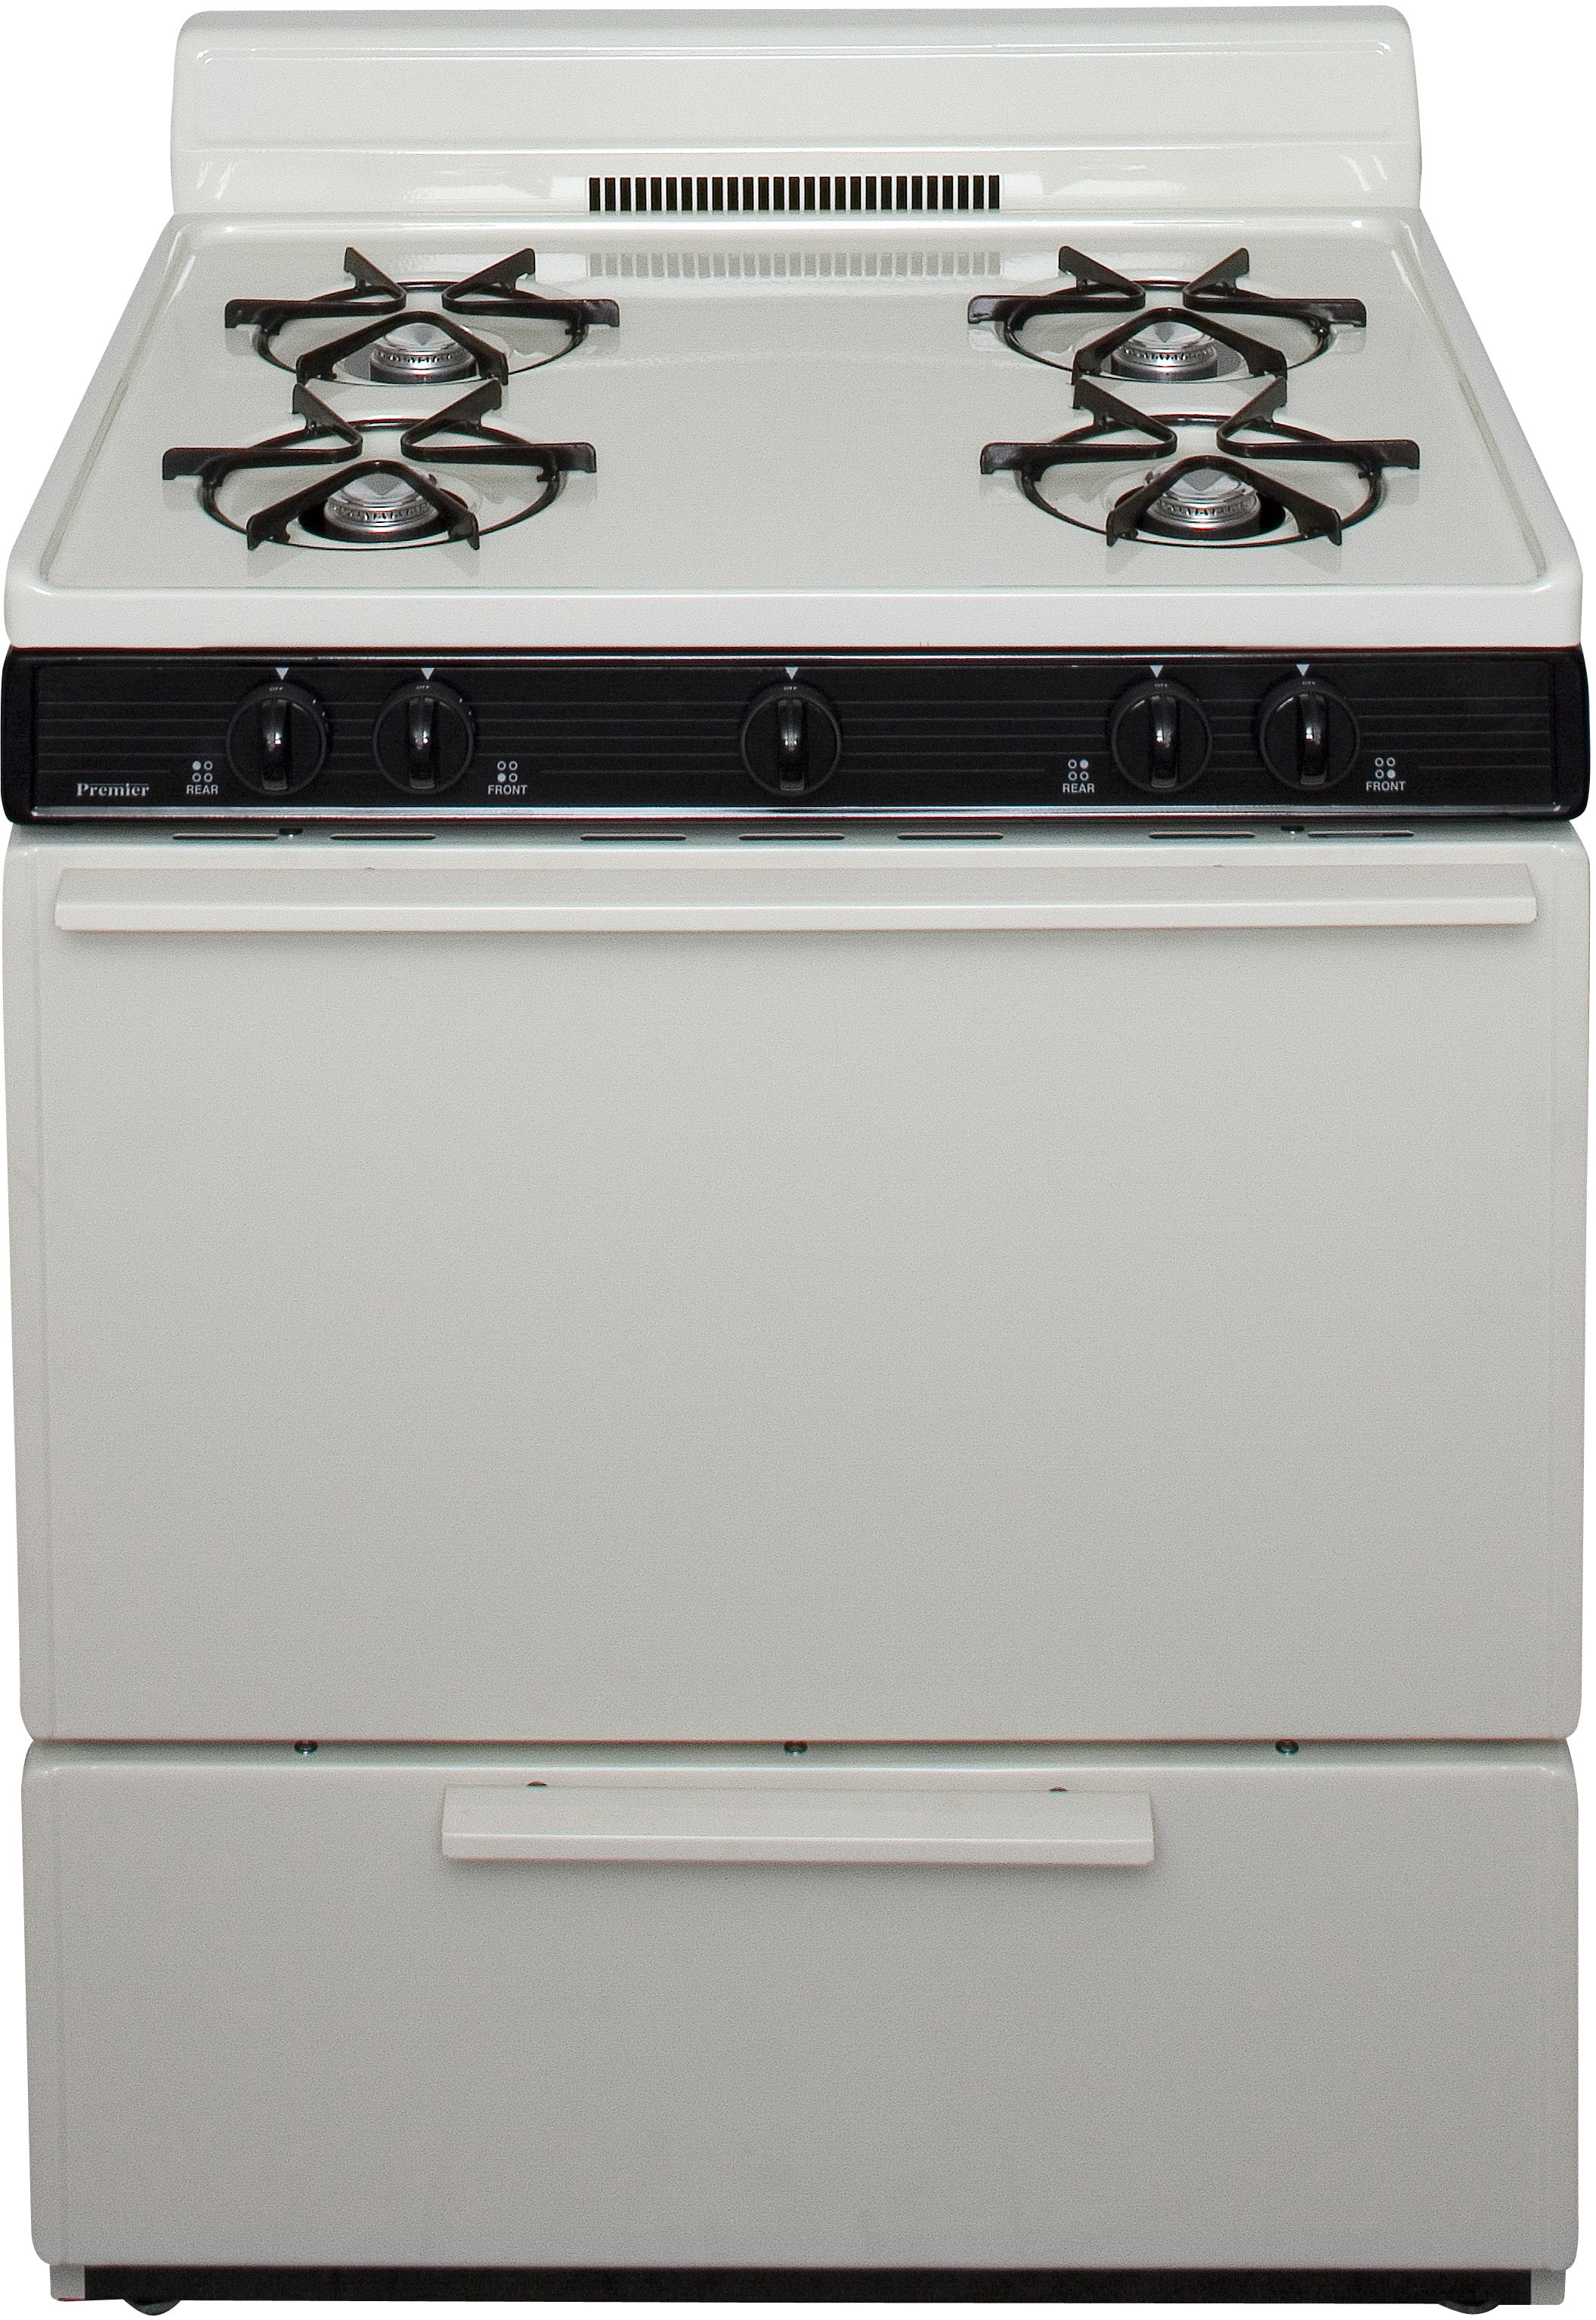 Premier Sfk100t 30 Inch Freestanding Gas Range With Four